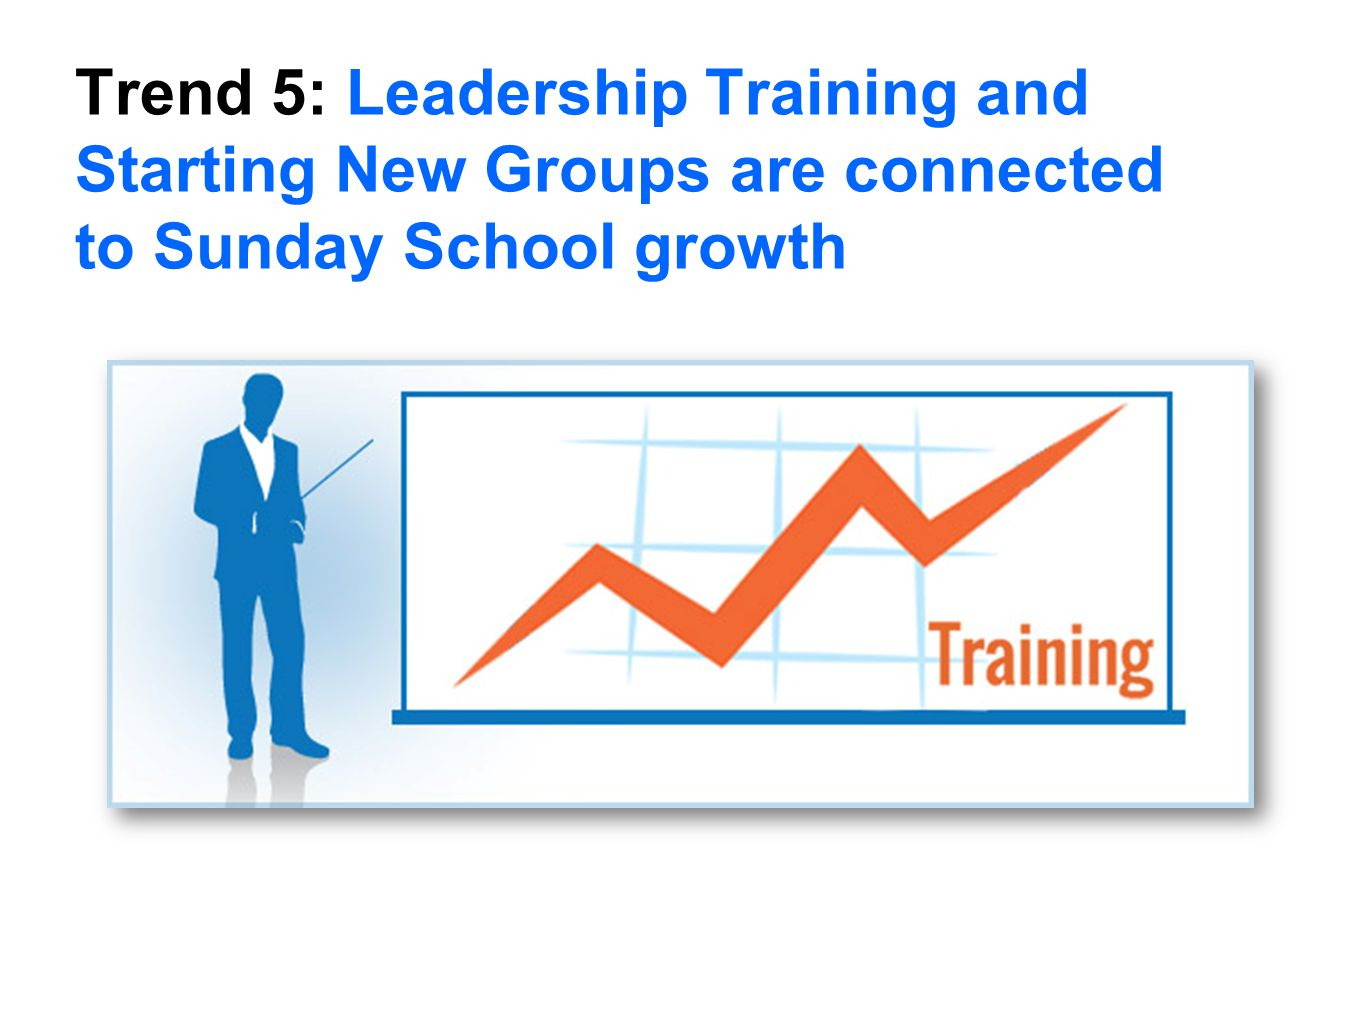 Trend 5: Leadership Training and Starting New Groups are connected to Sunday School growth